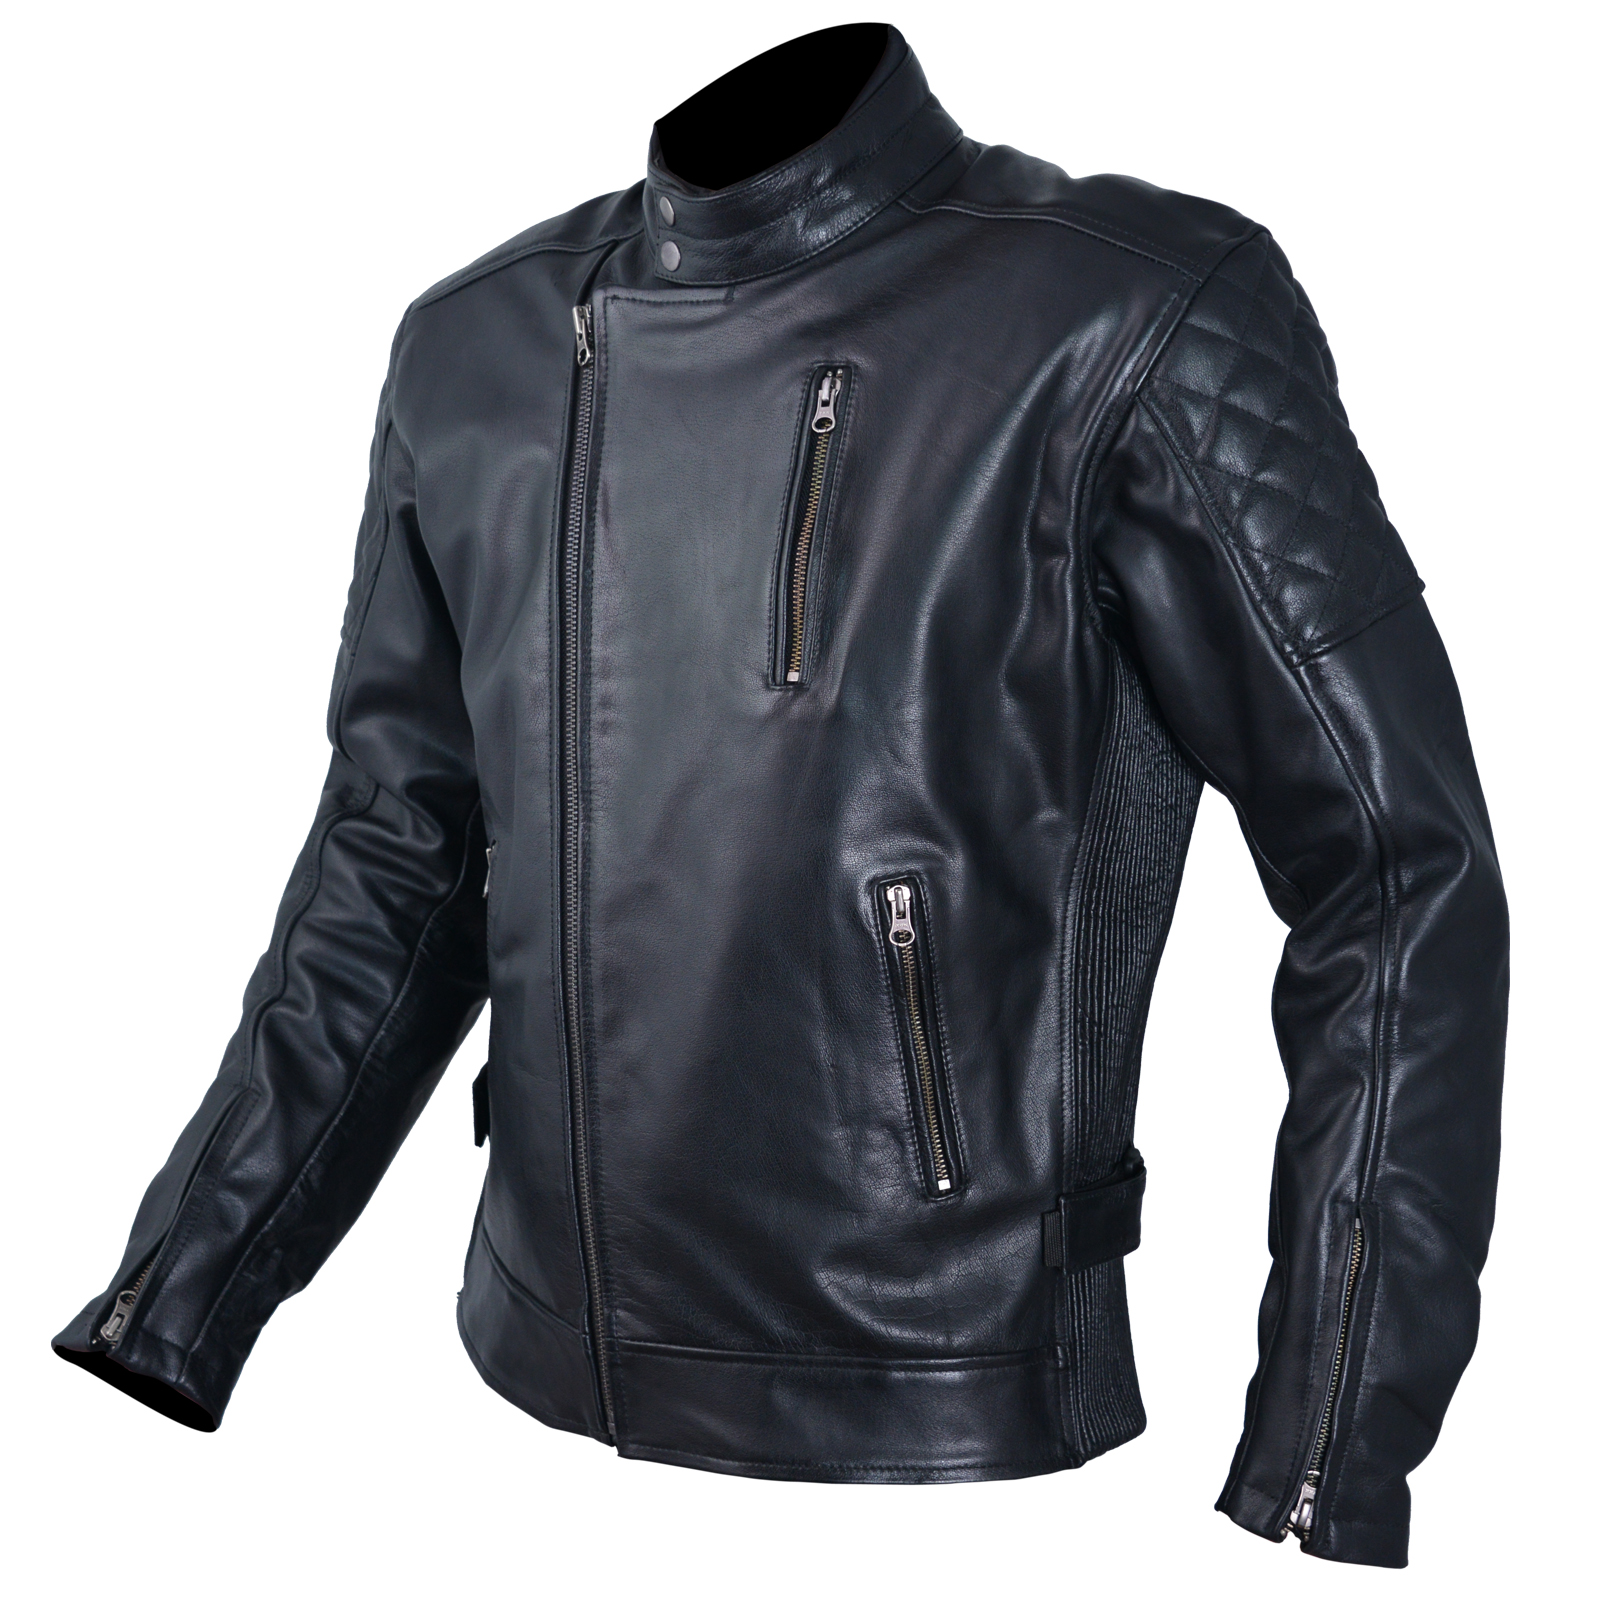 blouson cuir homme moto protections ce veste vintage. Black Bedroom Furniture Sets. Home Design Ideas